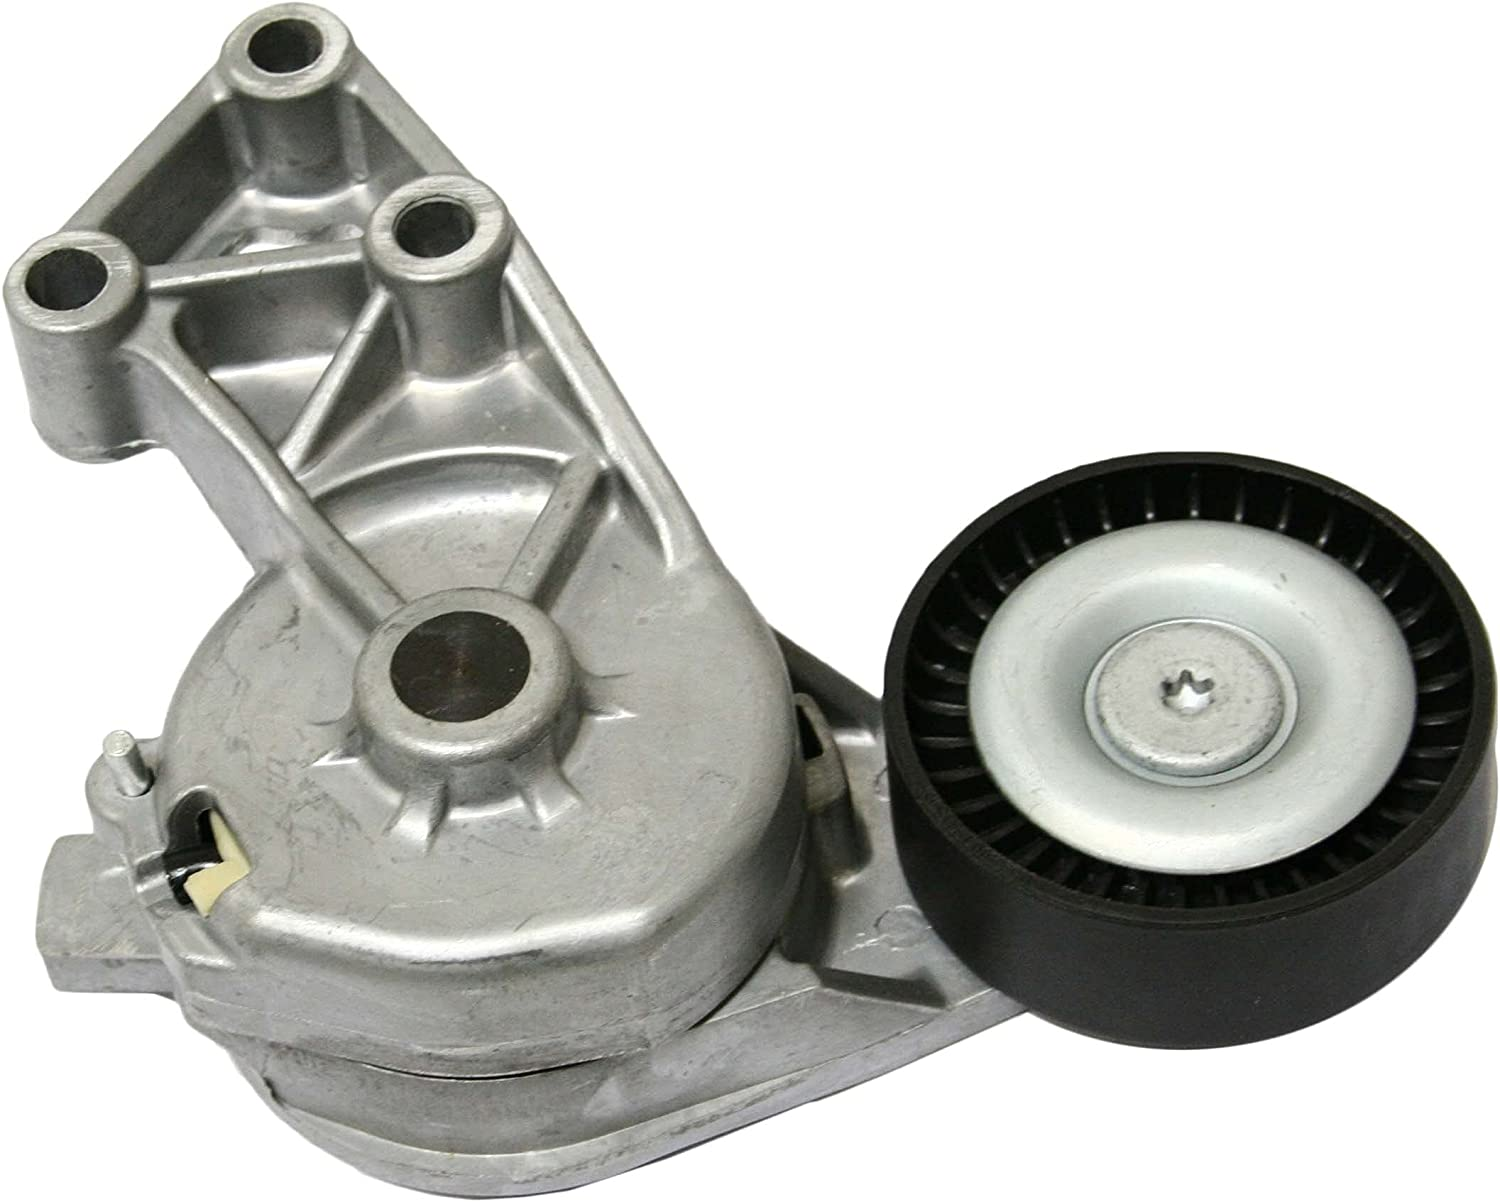 Garage-Pro Accessory Easy-to-use Belt Tensioner Vo Ranking TOP18 1999-2005 with Compatible